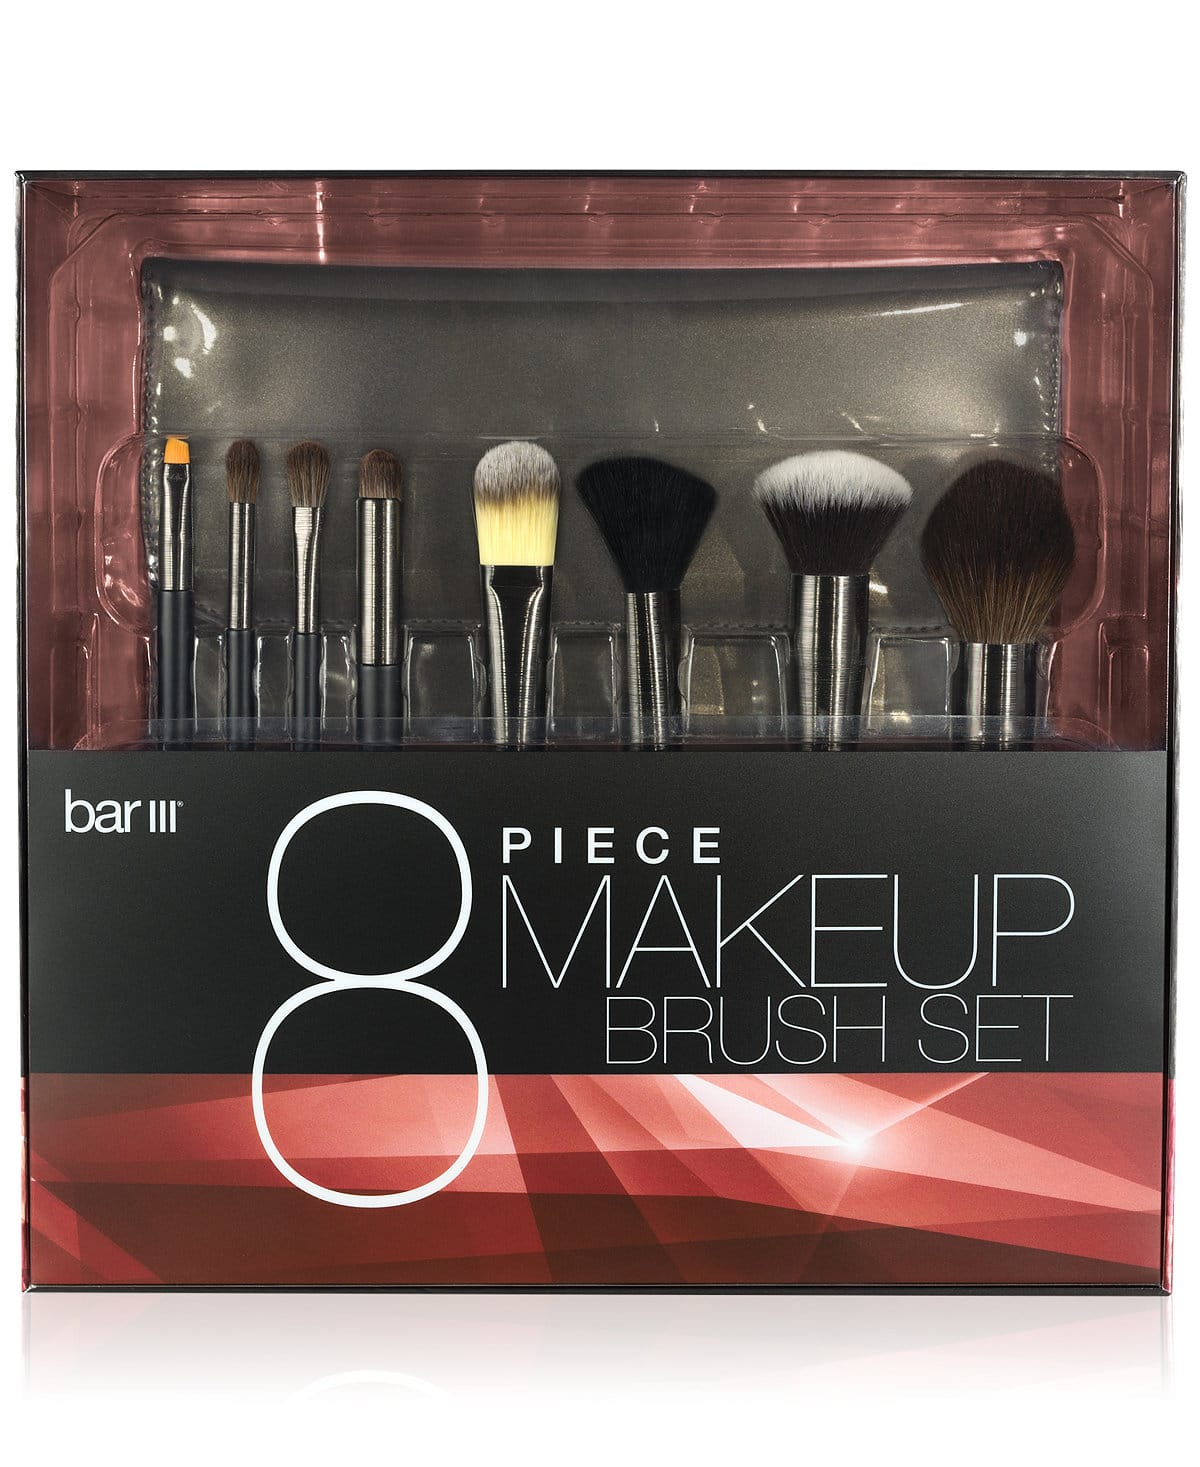 Bar III 8-Piece Makeup Brush Set - $29.50 w/ free shipping